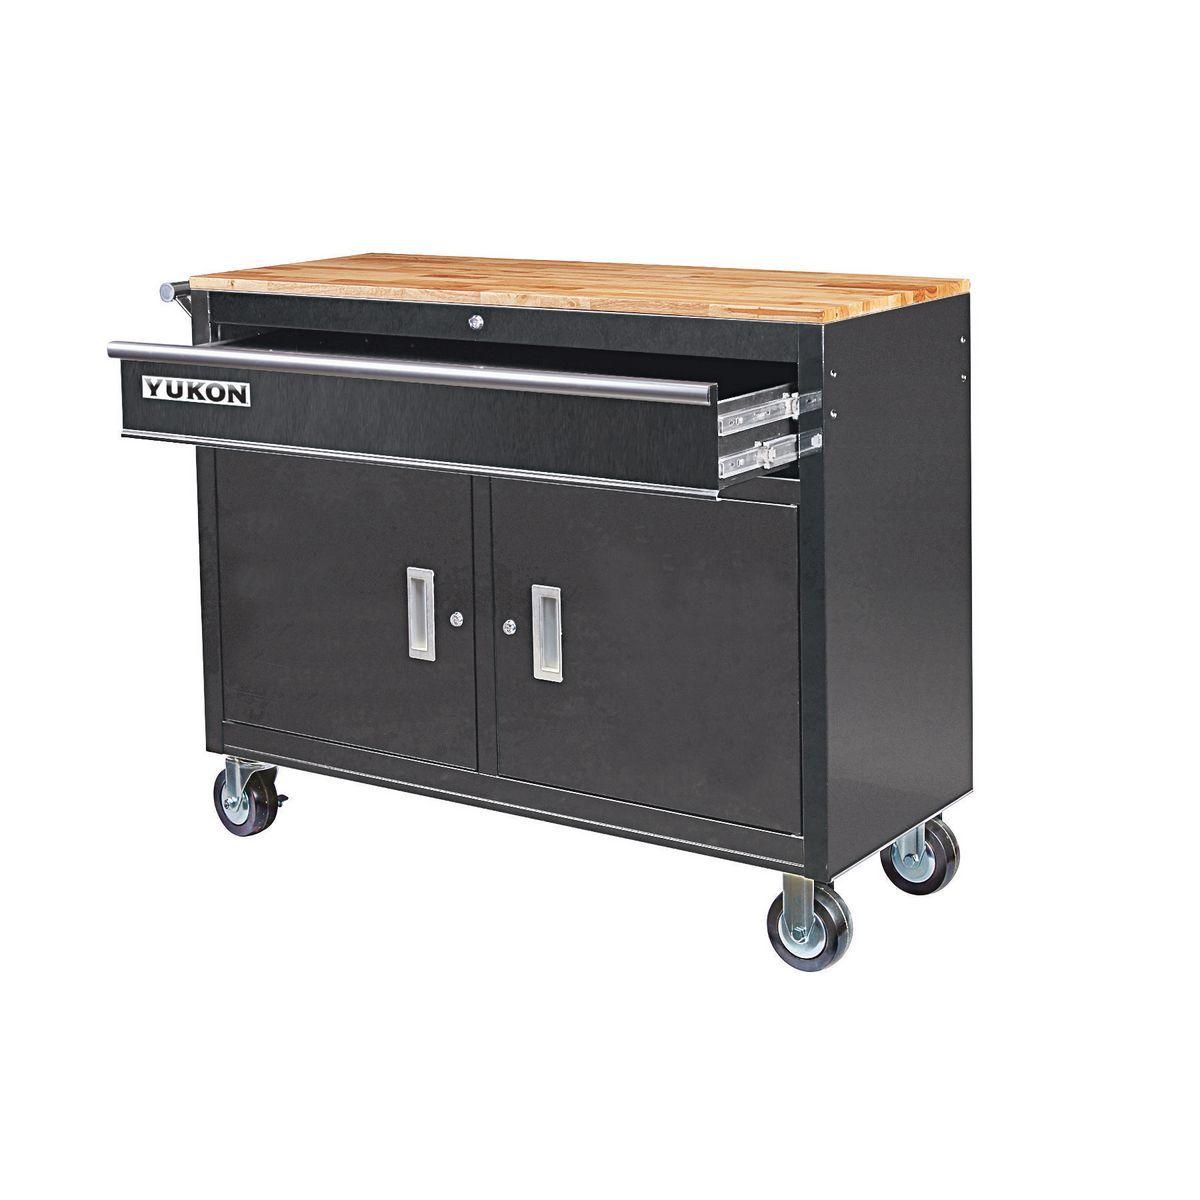 46 In Mobile Workbench With Solid Wood Top Black Mobile Workbench Metal Storage Cabinets Tool Storage Cabinets